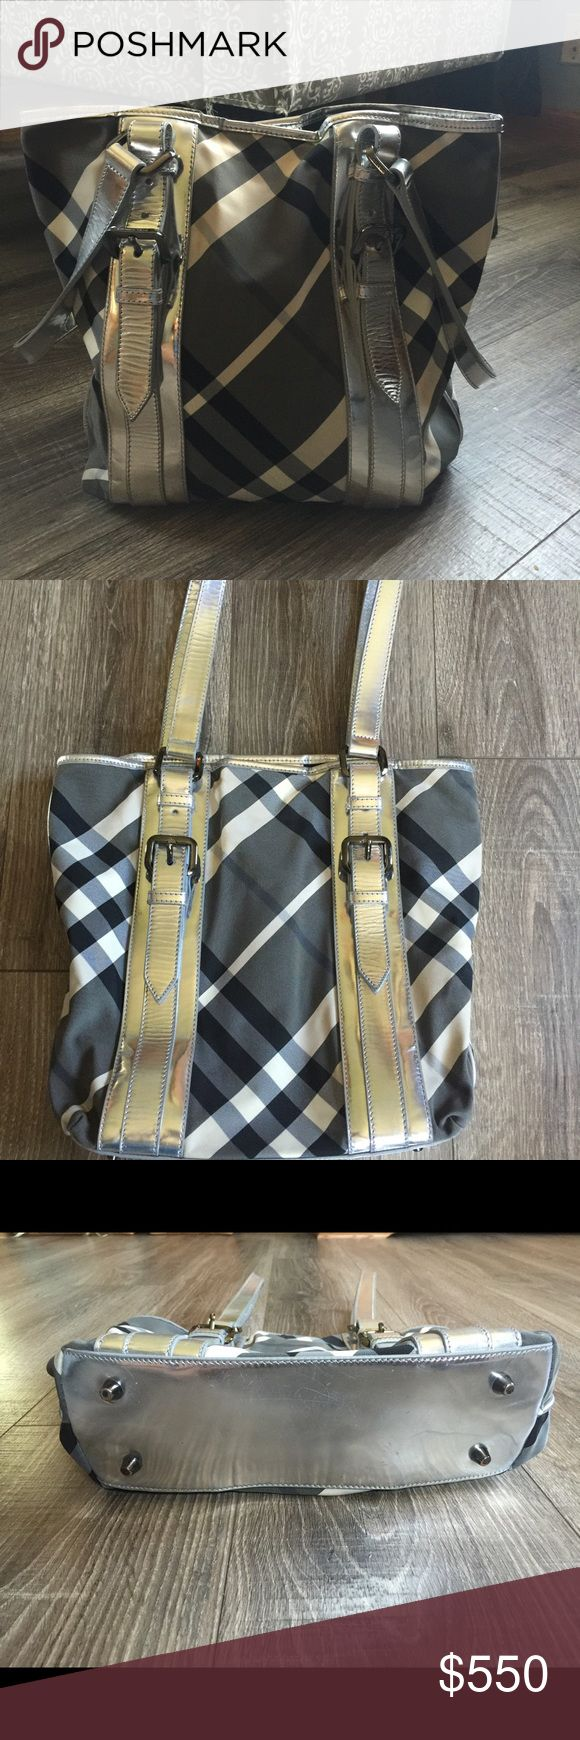 Authentic Burberry Beat Check Victoria Tote Bag Add add a hint of luxe to your weekend casual look! Original retail $800+ hard to find in silver!! - Beat check nylon body with patent leather trim - Gunmetal tone hardware - Double top handles - Magnetic snap tab closure - 4 protective metal feet - Fabric lining - 1 zipper pocket, 2 slip pockets - Debossed designer label  - Discolouration and stains on fabric body  - Scratches on protective metal feet and leather  Measurement: Length (at base)…